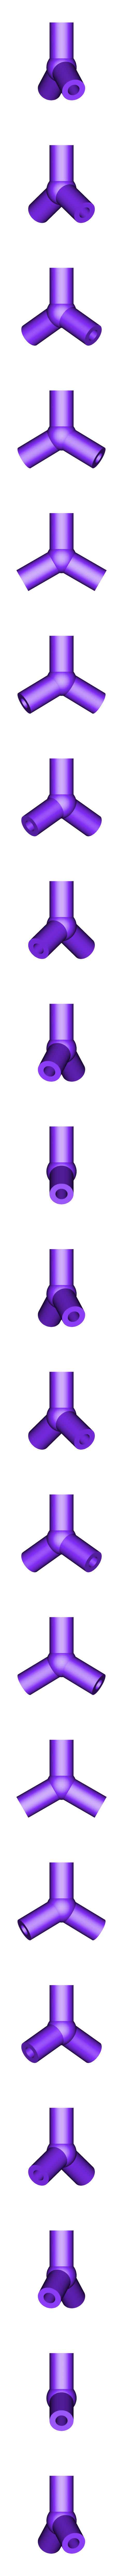 connecteurs(2).stl Download free STL file straw connectors • Object to 3D print, fred1200gsx